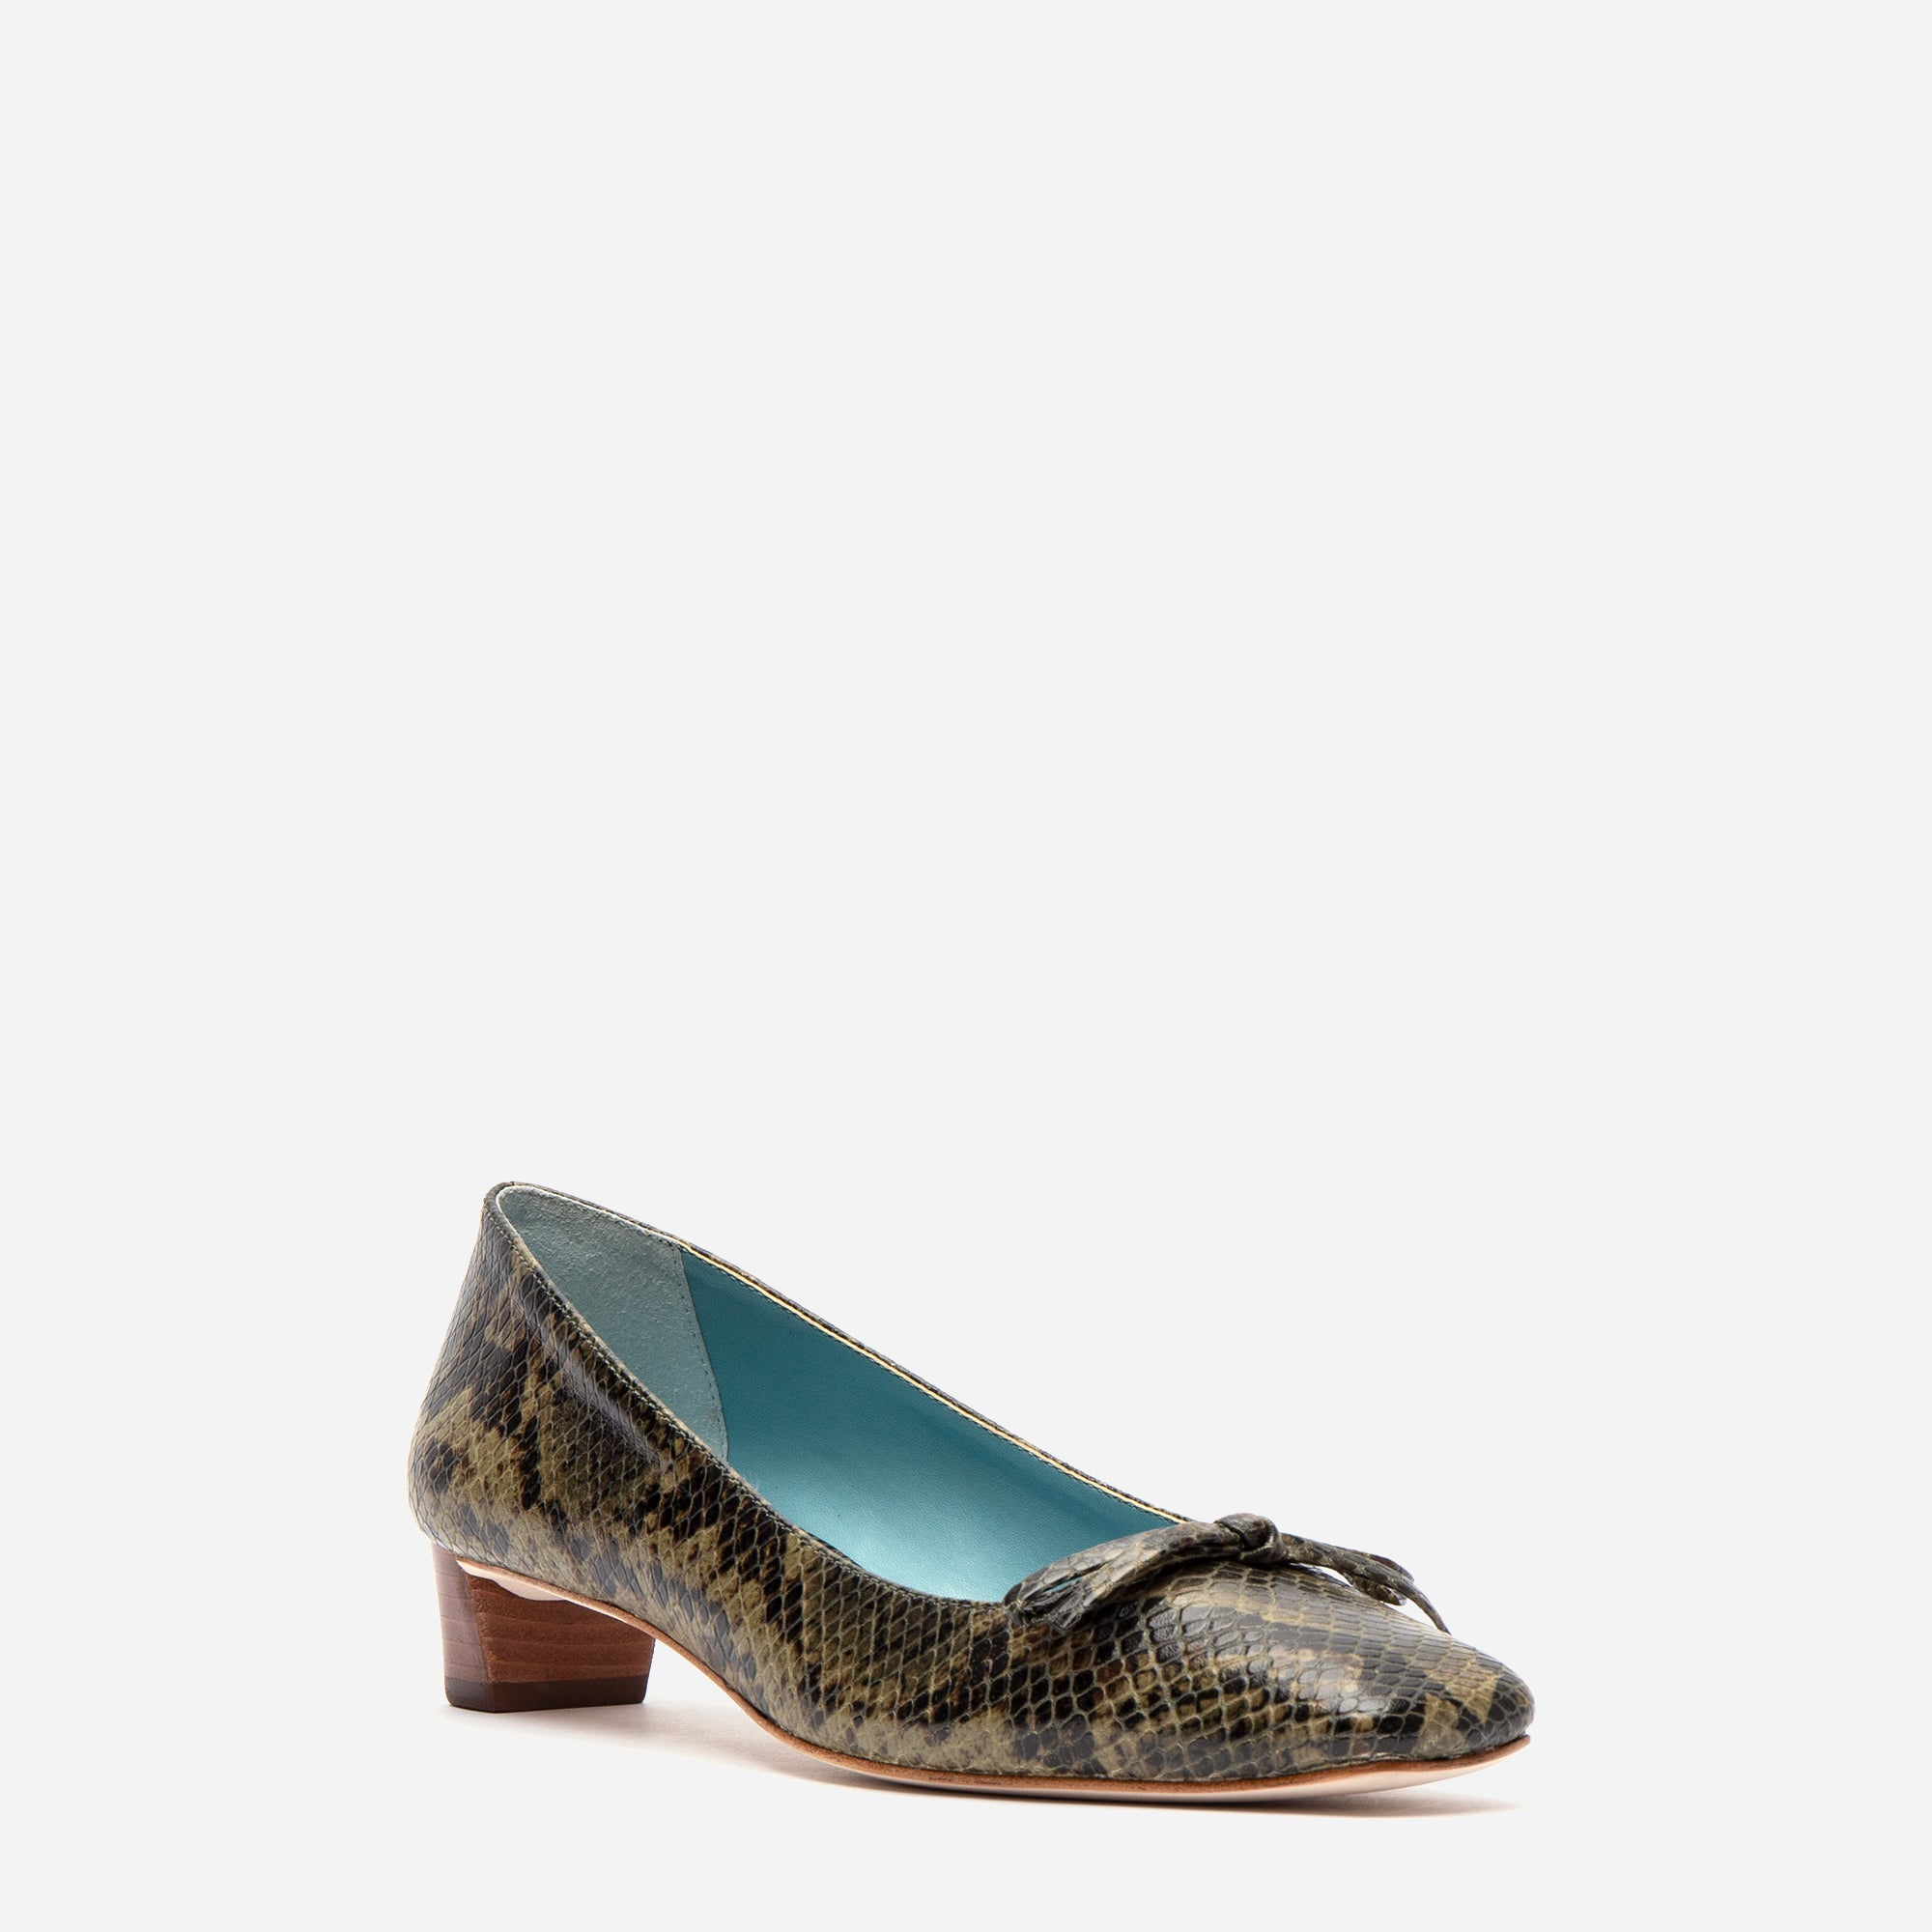 Mary Mini Block Heel Printed Snake Olive